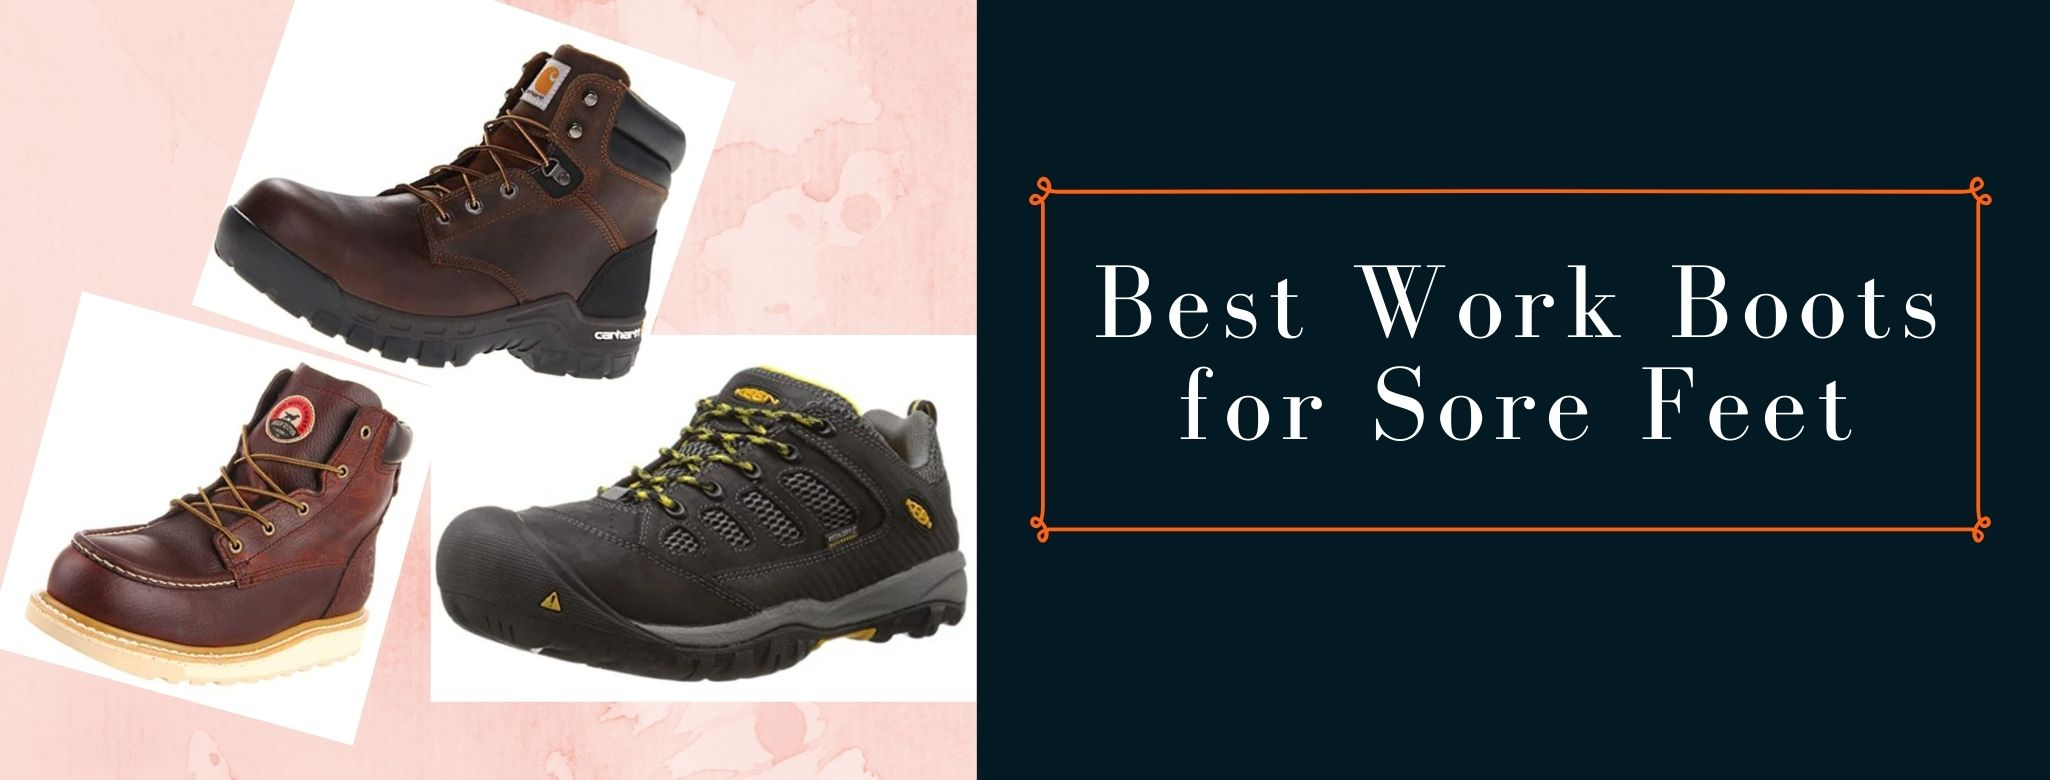 Comfortable boots for sore feet